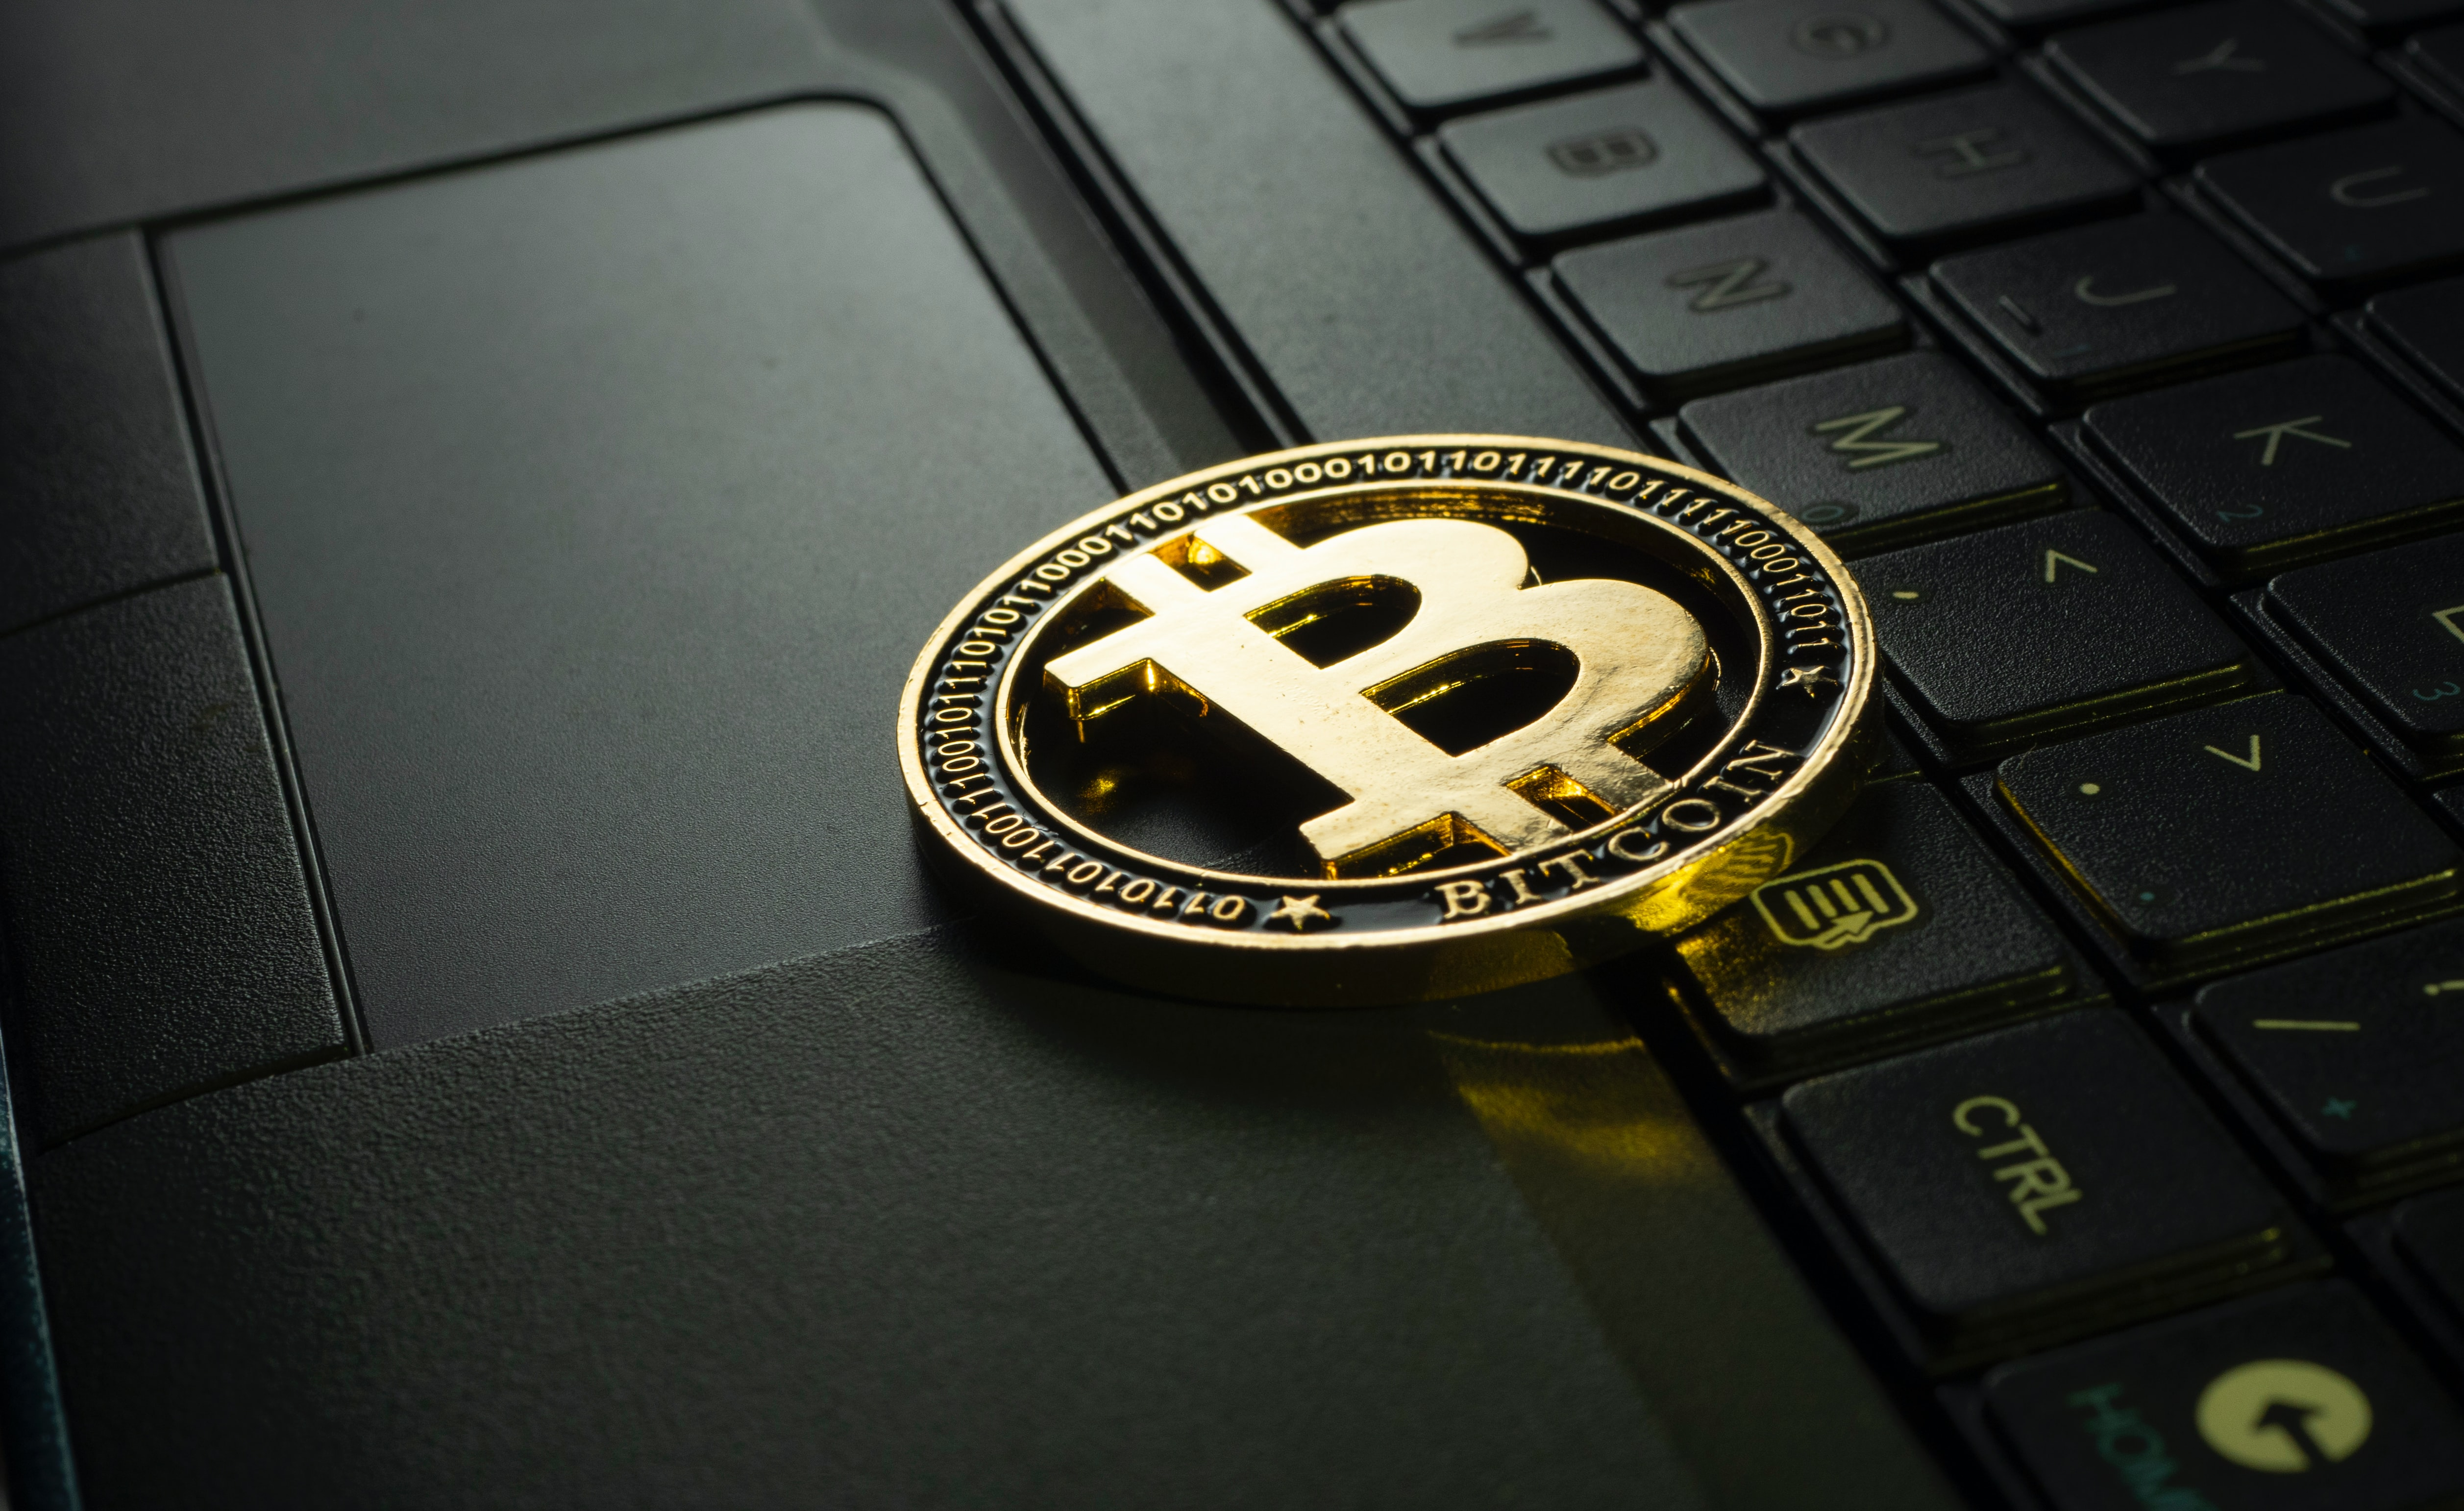 The Bitcoin Mining Council Says There Is No Insidious Agenda